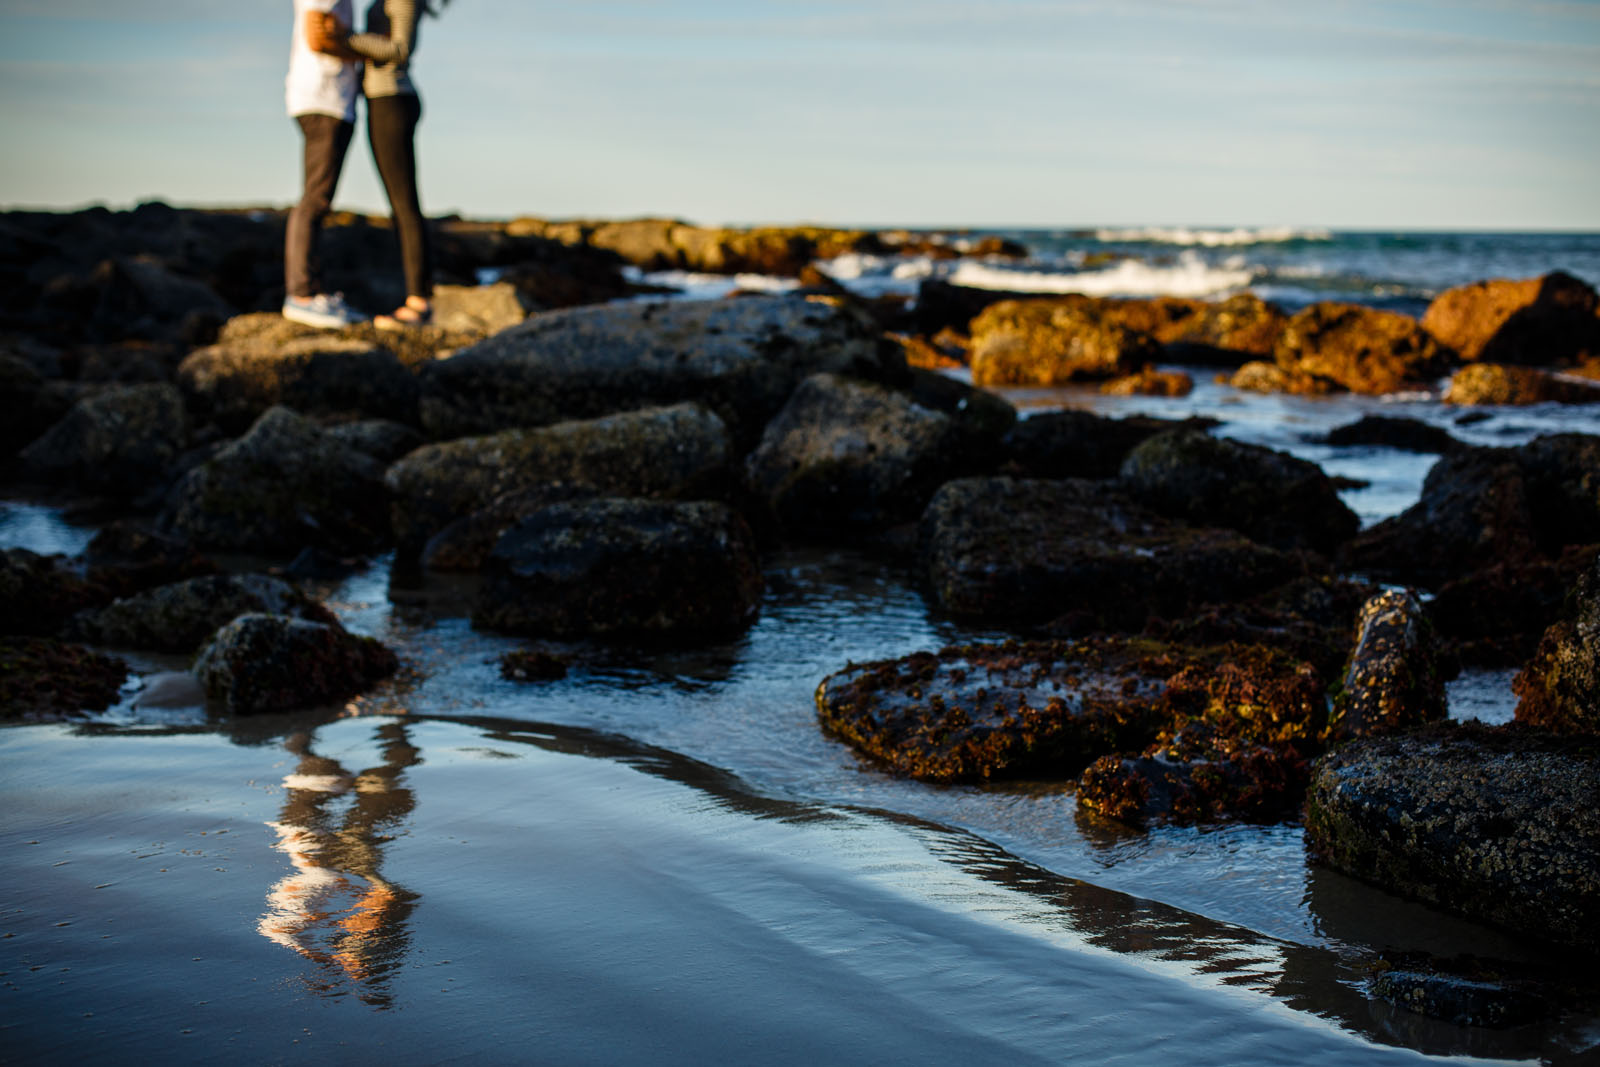 Engagement Portrait session photogrpahed in Ballina/Lennox Head by Byron Bay wedding photographer Ben Wyeth.